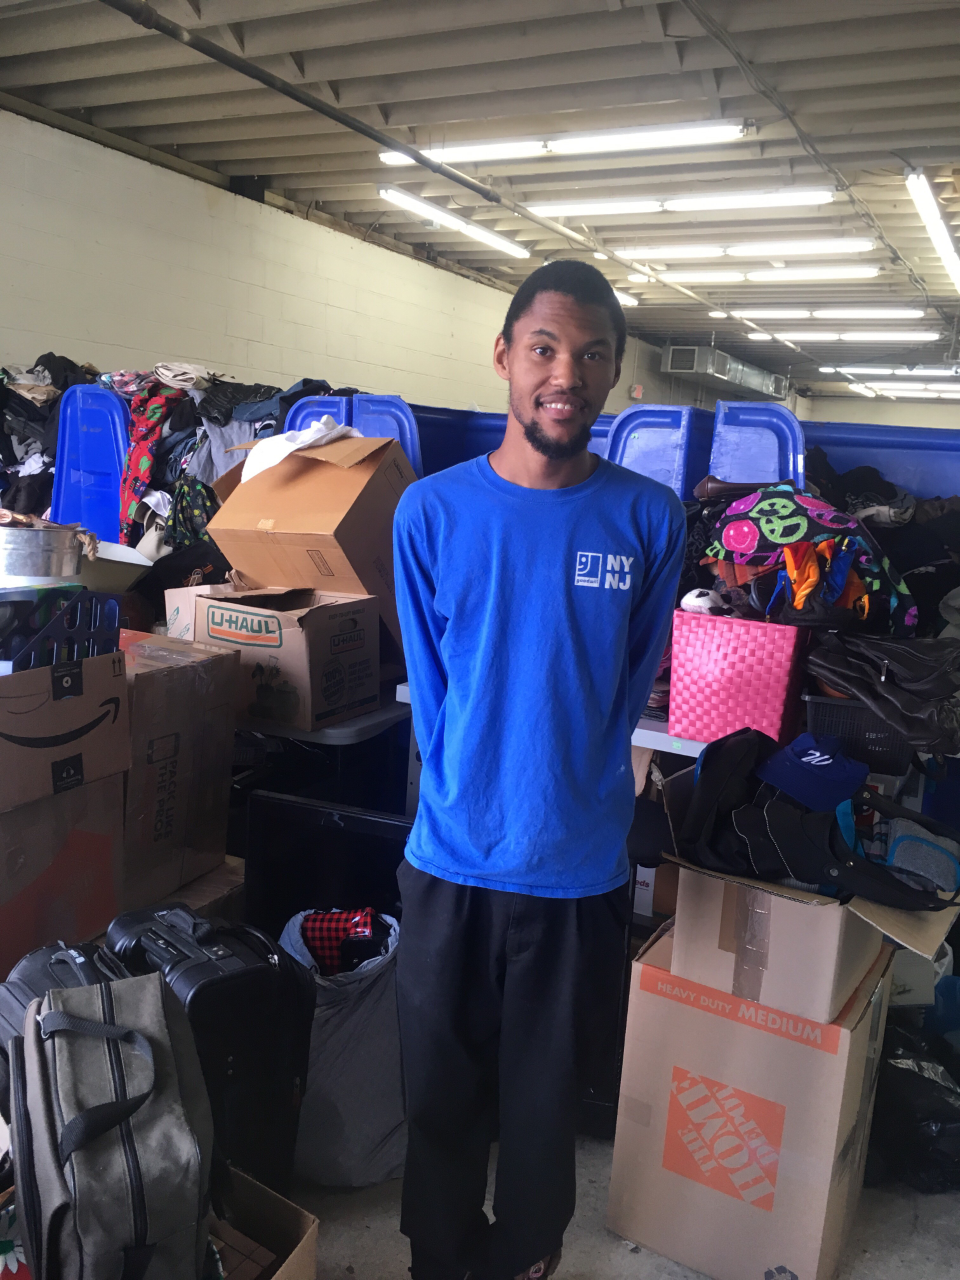 Richard J. - Where do you work? I work at Goodwill in Springfield, New Jersey.How long have you worked there? I've been working here since September 2018.What are you job duties? I am responsible for taking in and sorting donations. Sometimes I build cages for the items to be organized in. Do you like working at Goodwill? Yes, especially with my co-workers. Tell us about your experience working with Inroads? They helped me to find this job and they are a good support system. What do you like to do for fun? I like to go out with my family members whenever I have extra time.